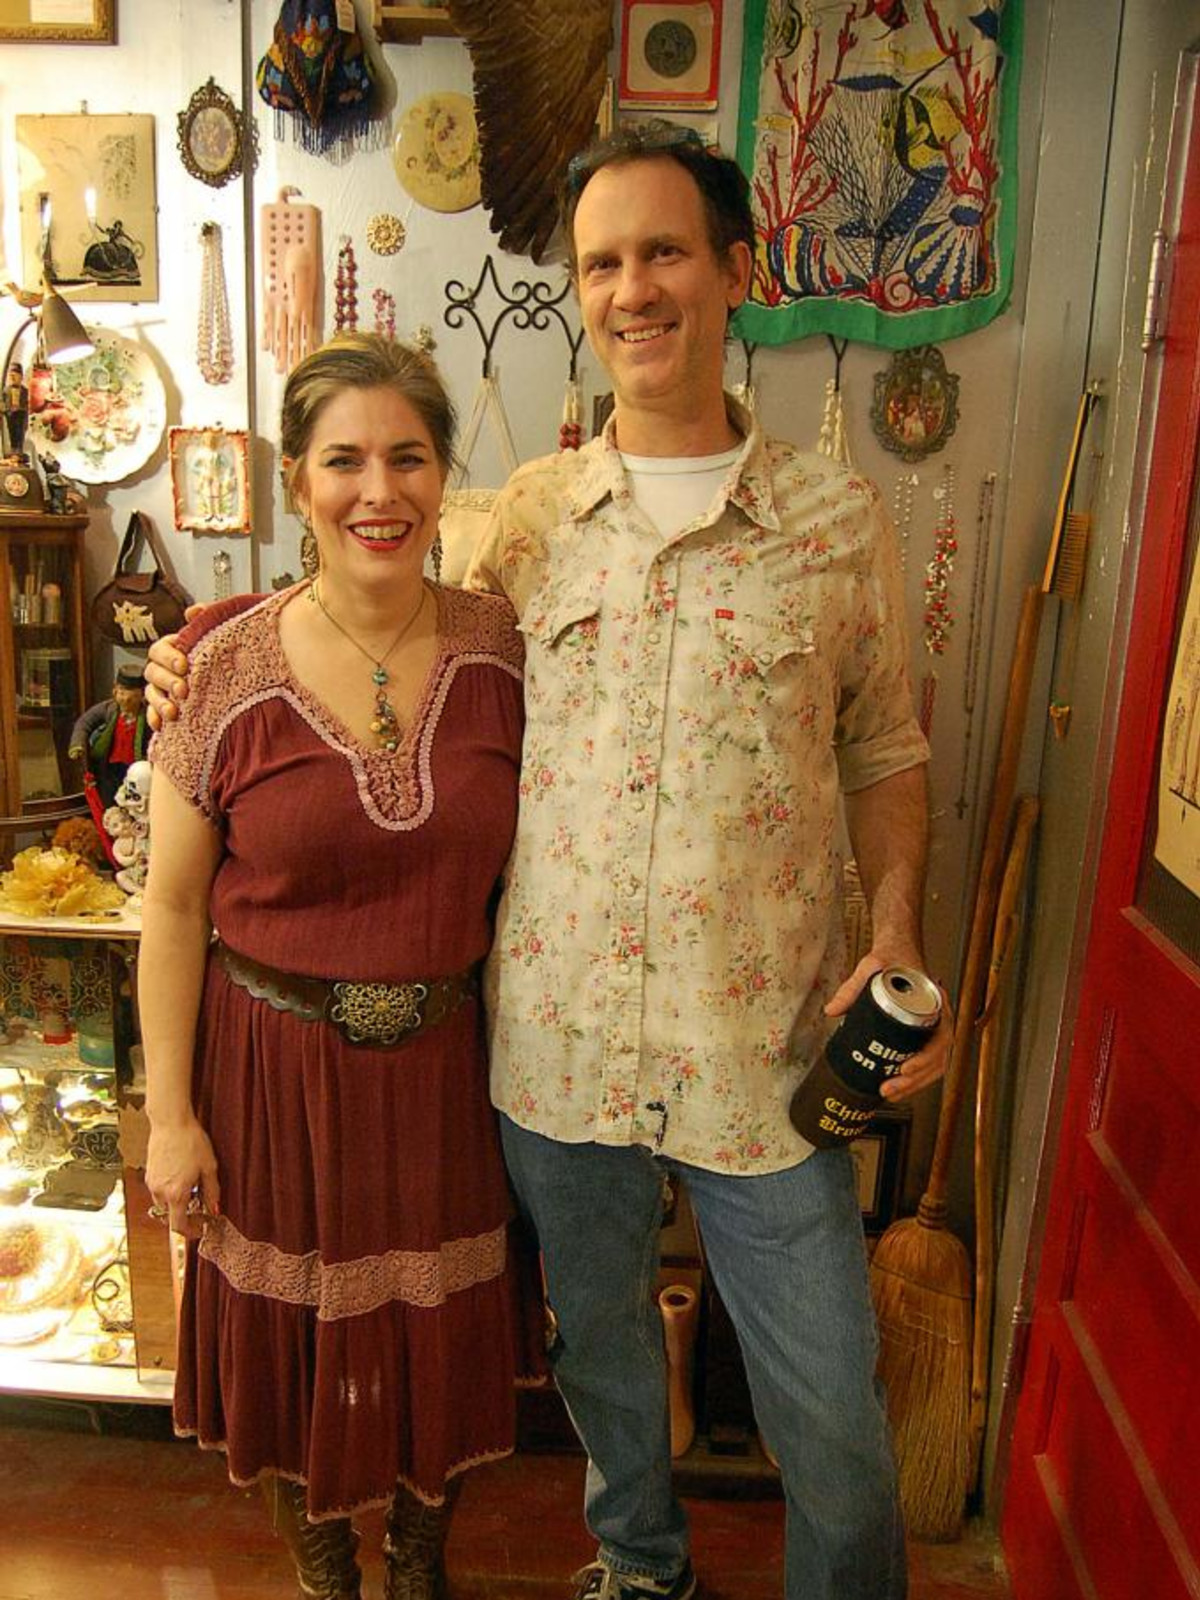 Houston S Best Vintage Shops Thrifty Treasures And Stylish Steals Culturemap Houston